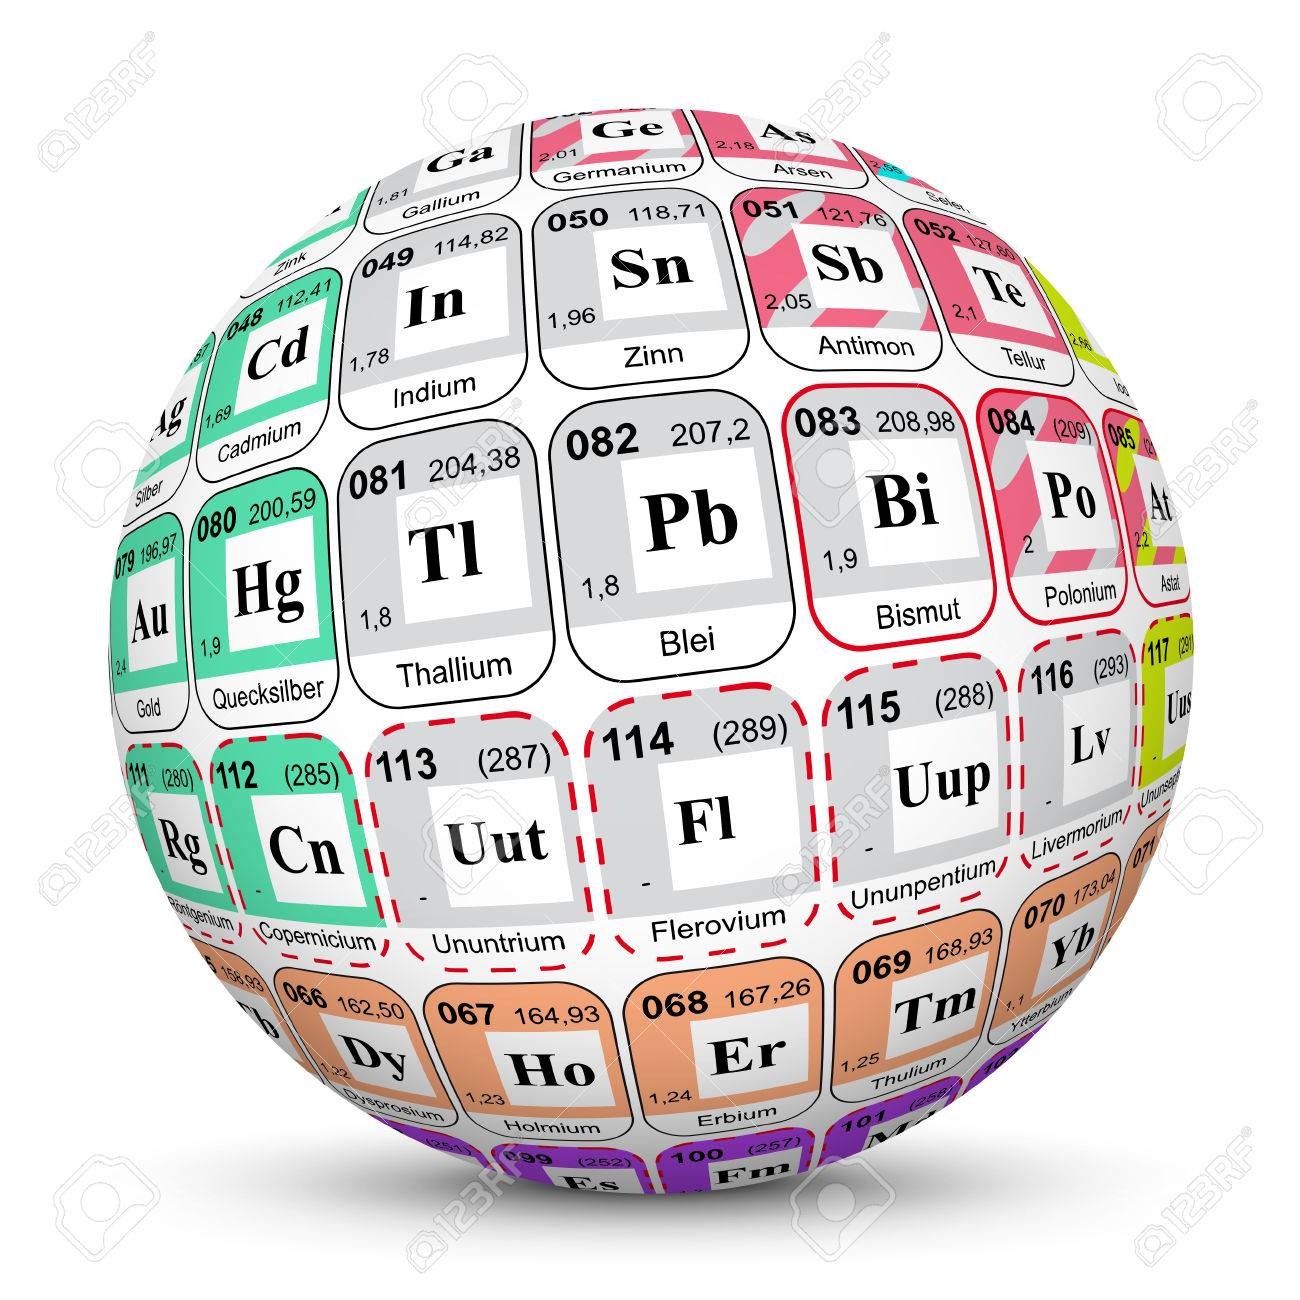 Studying periodic table images periodic table images abstract periodic table of chemical elements ball mendeleevs abstract periodic table of chemical elements ball mendeleevs gamestrikefo Choice Image